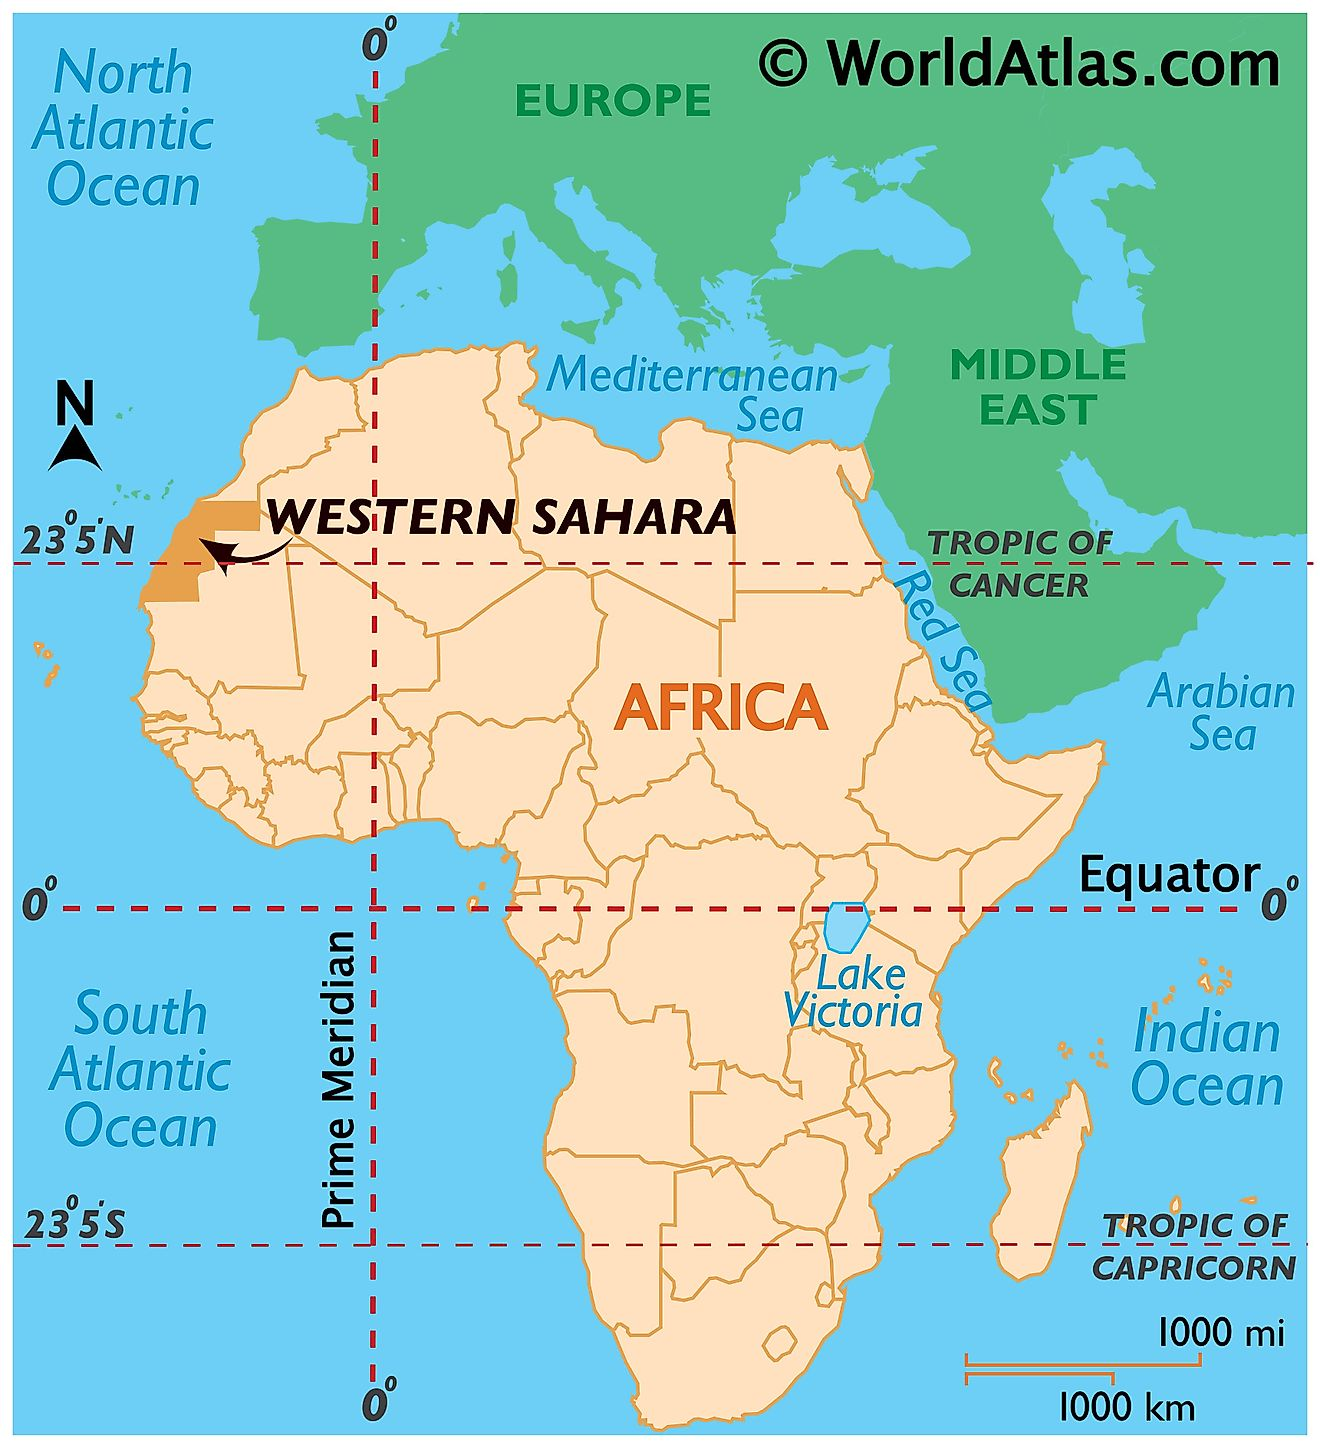 Map showing location of Western Sahara in the world.